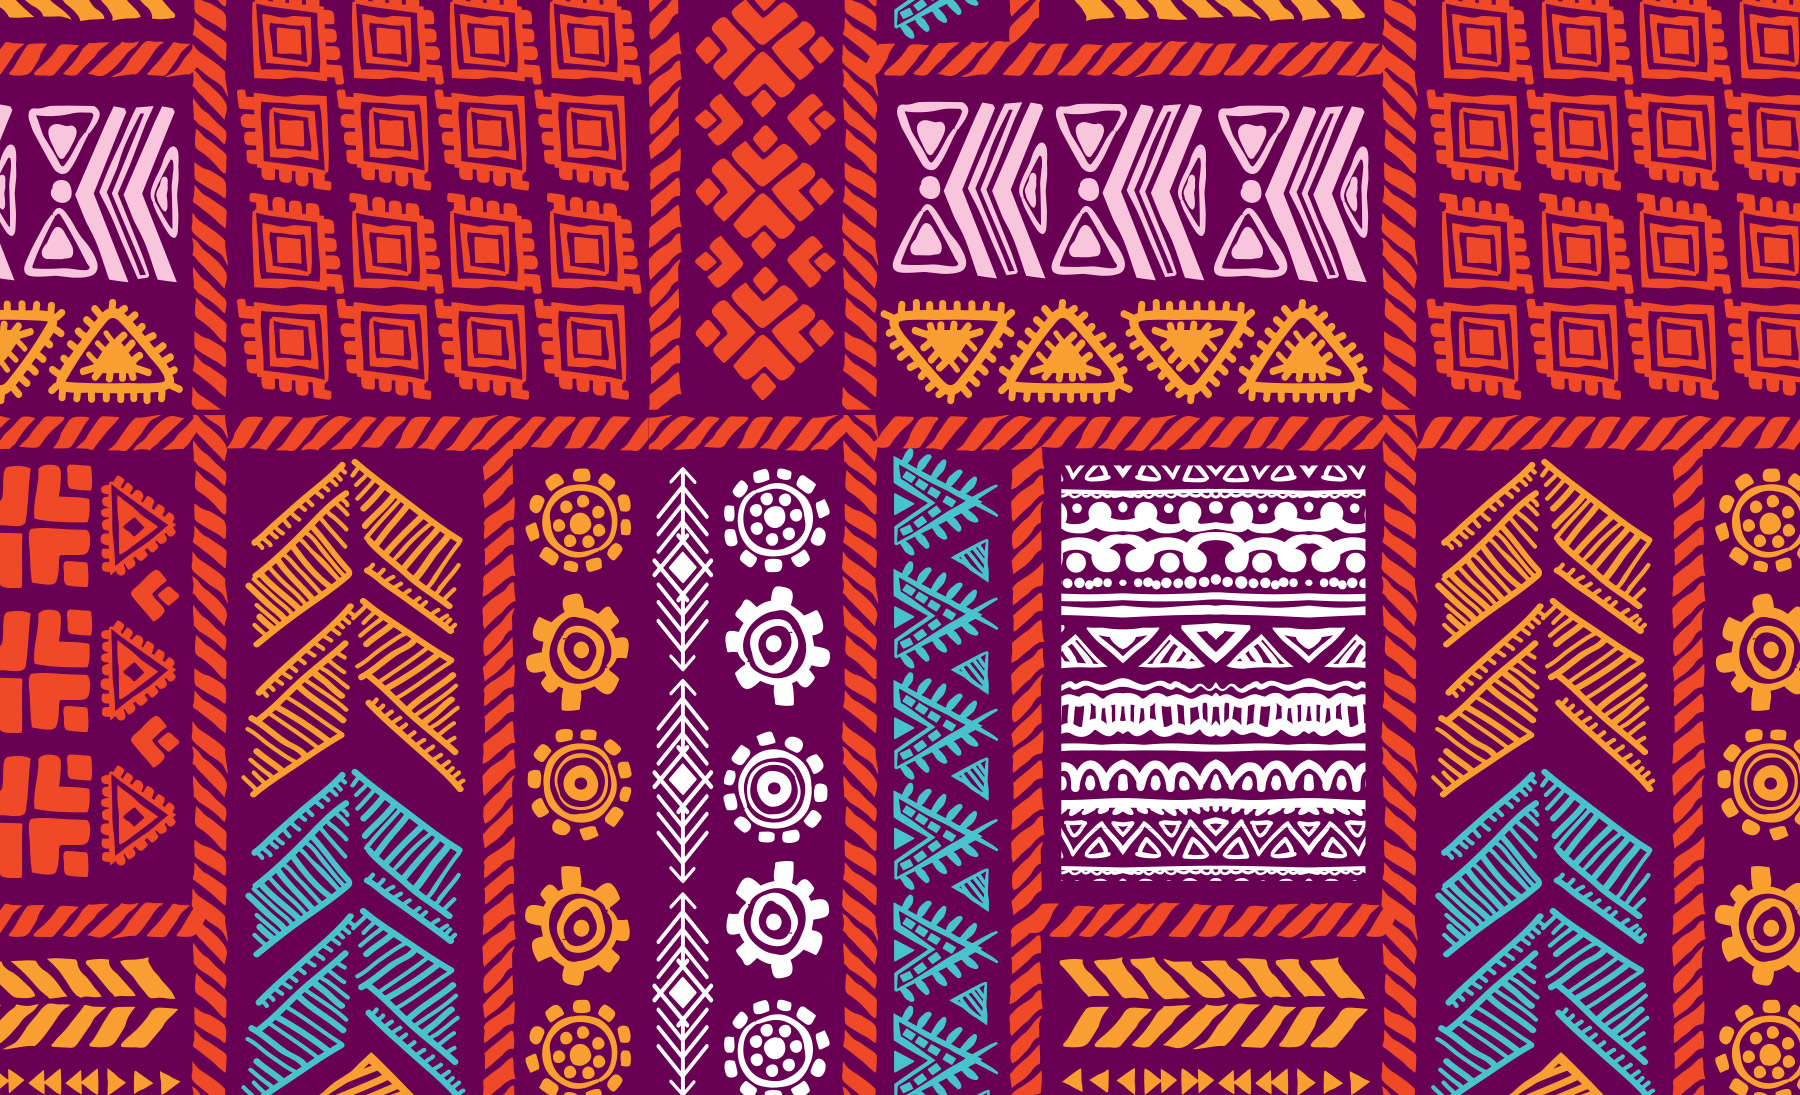 Festive brightly colored pattern